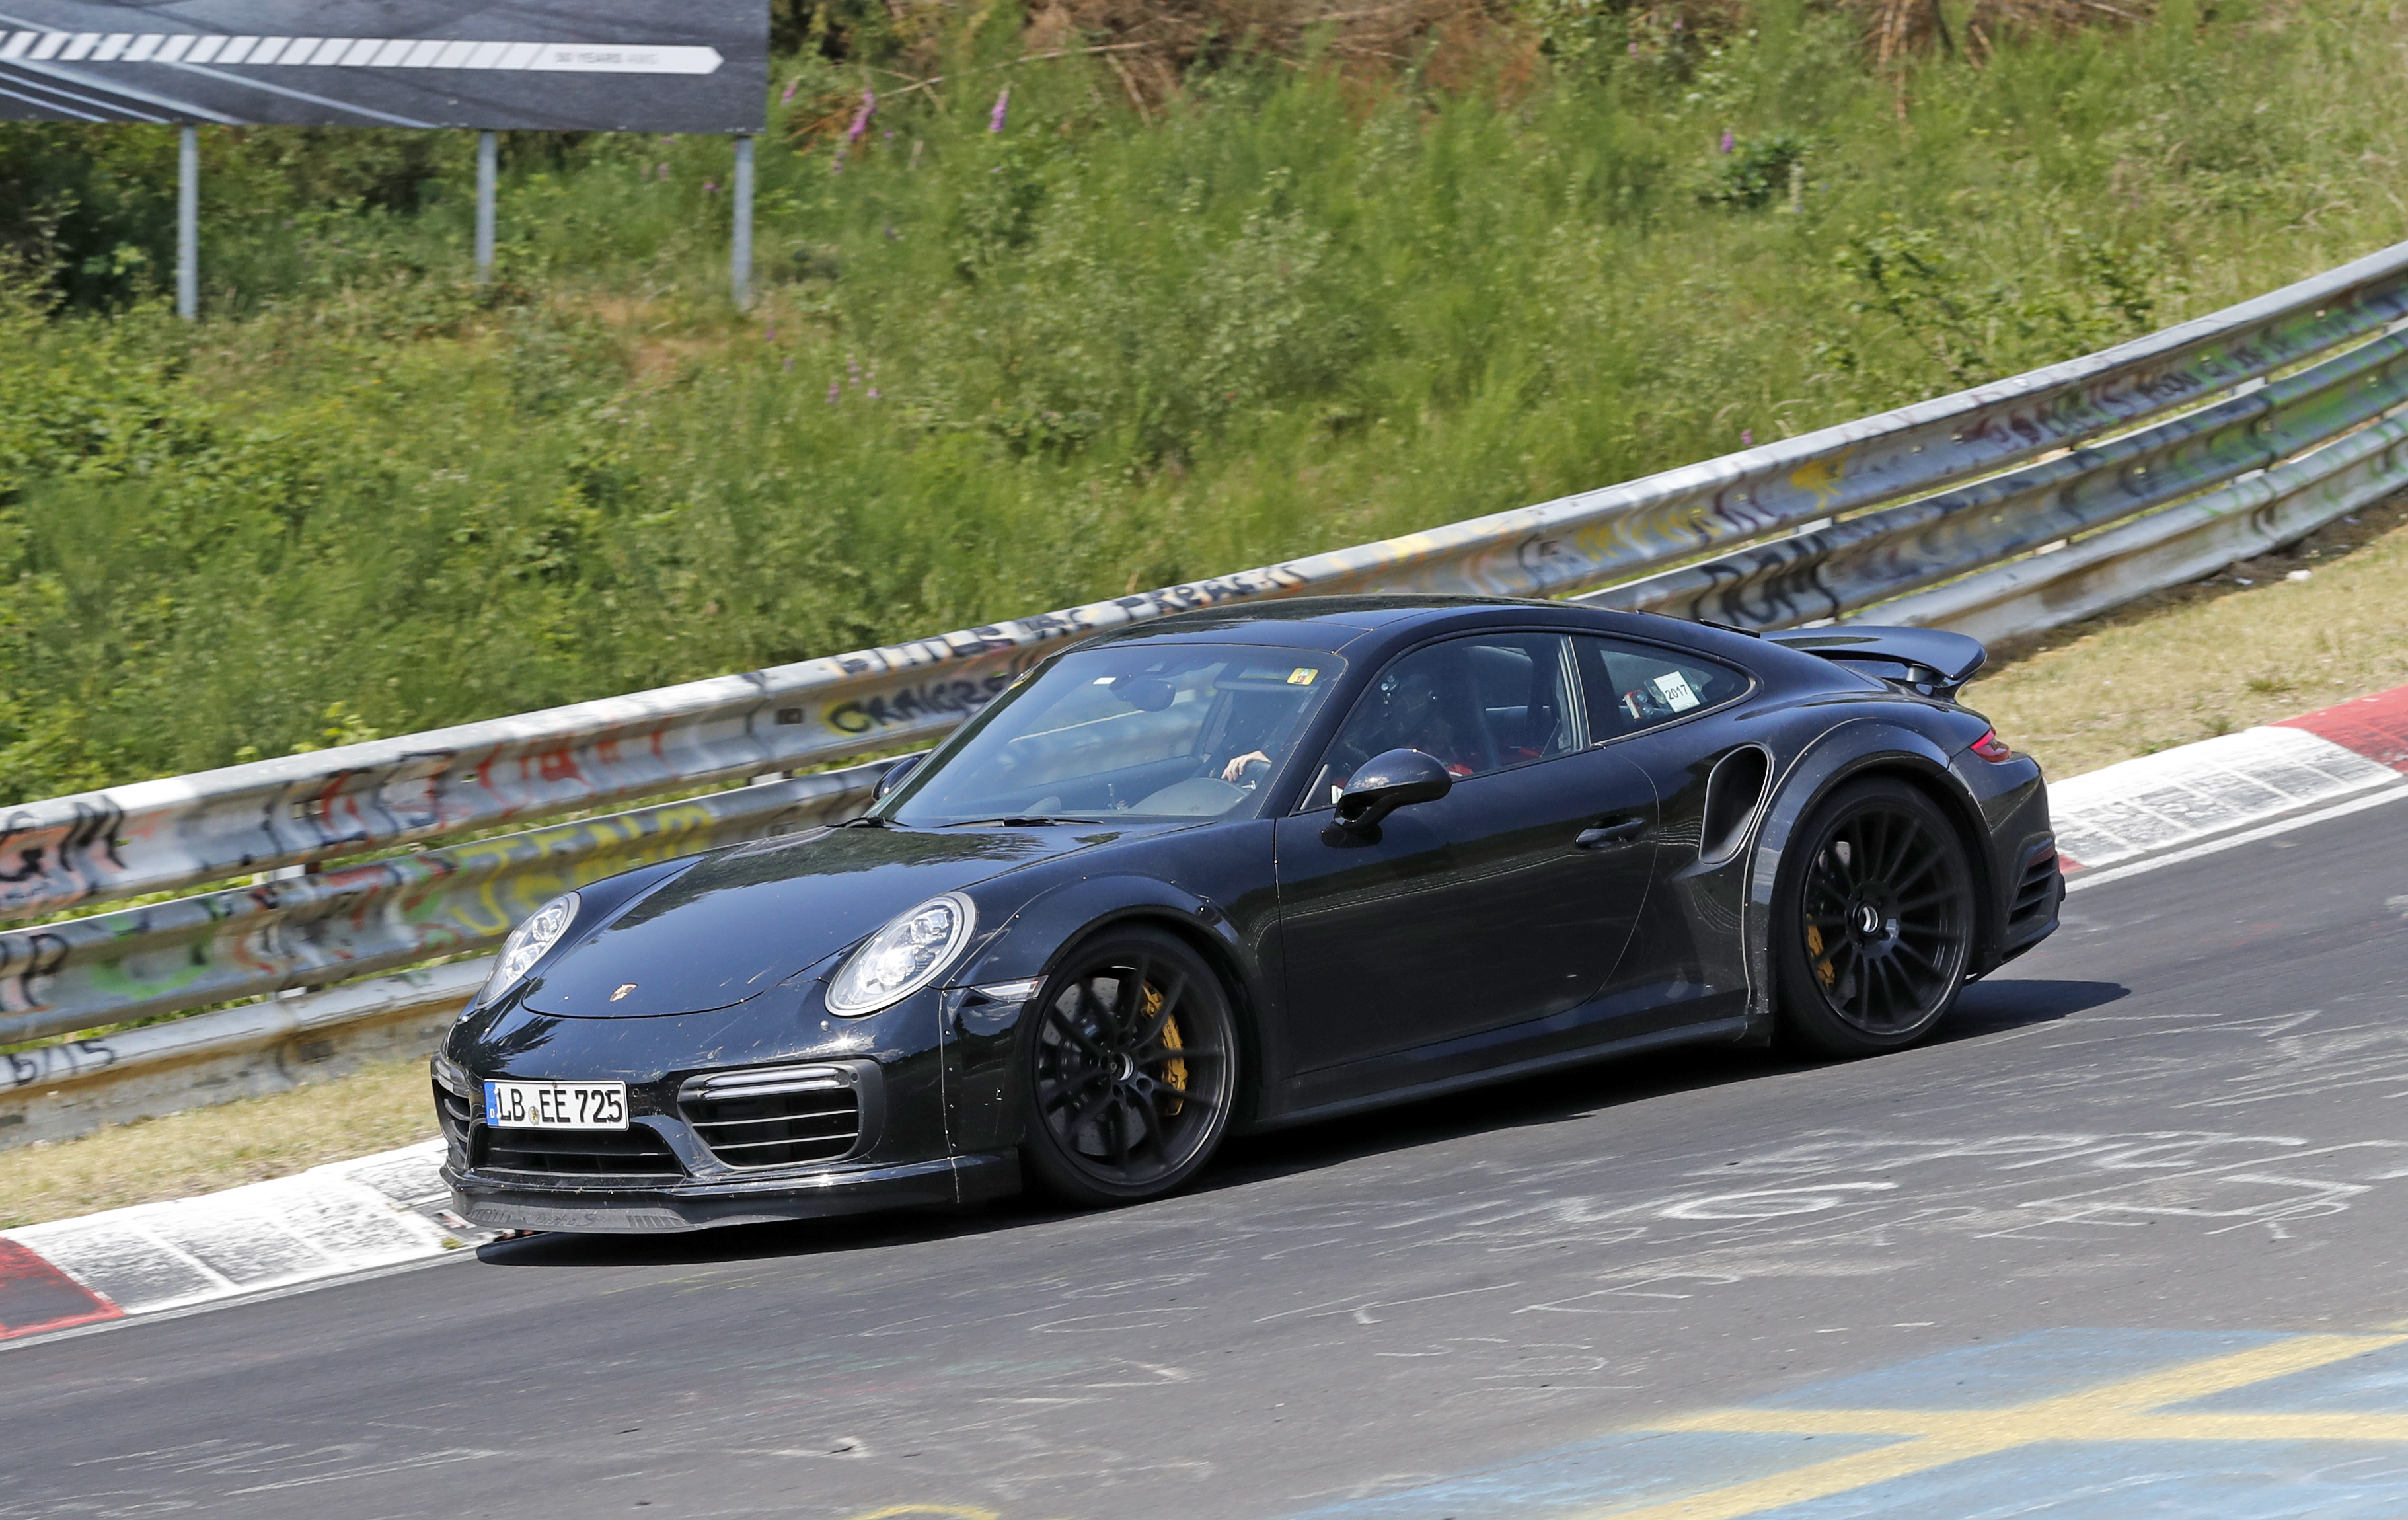 Porsche 911 Turbo Cabriolet hd specifications